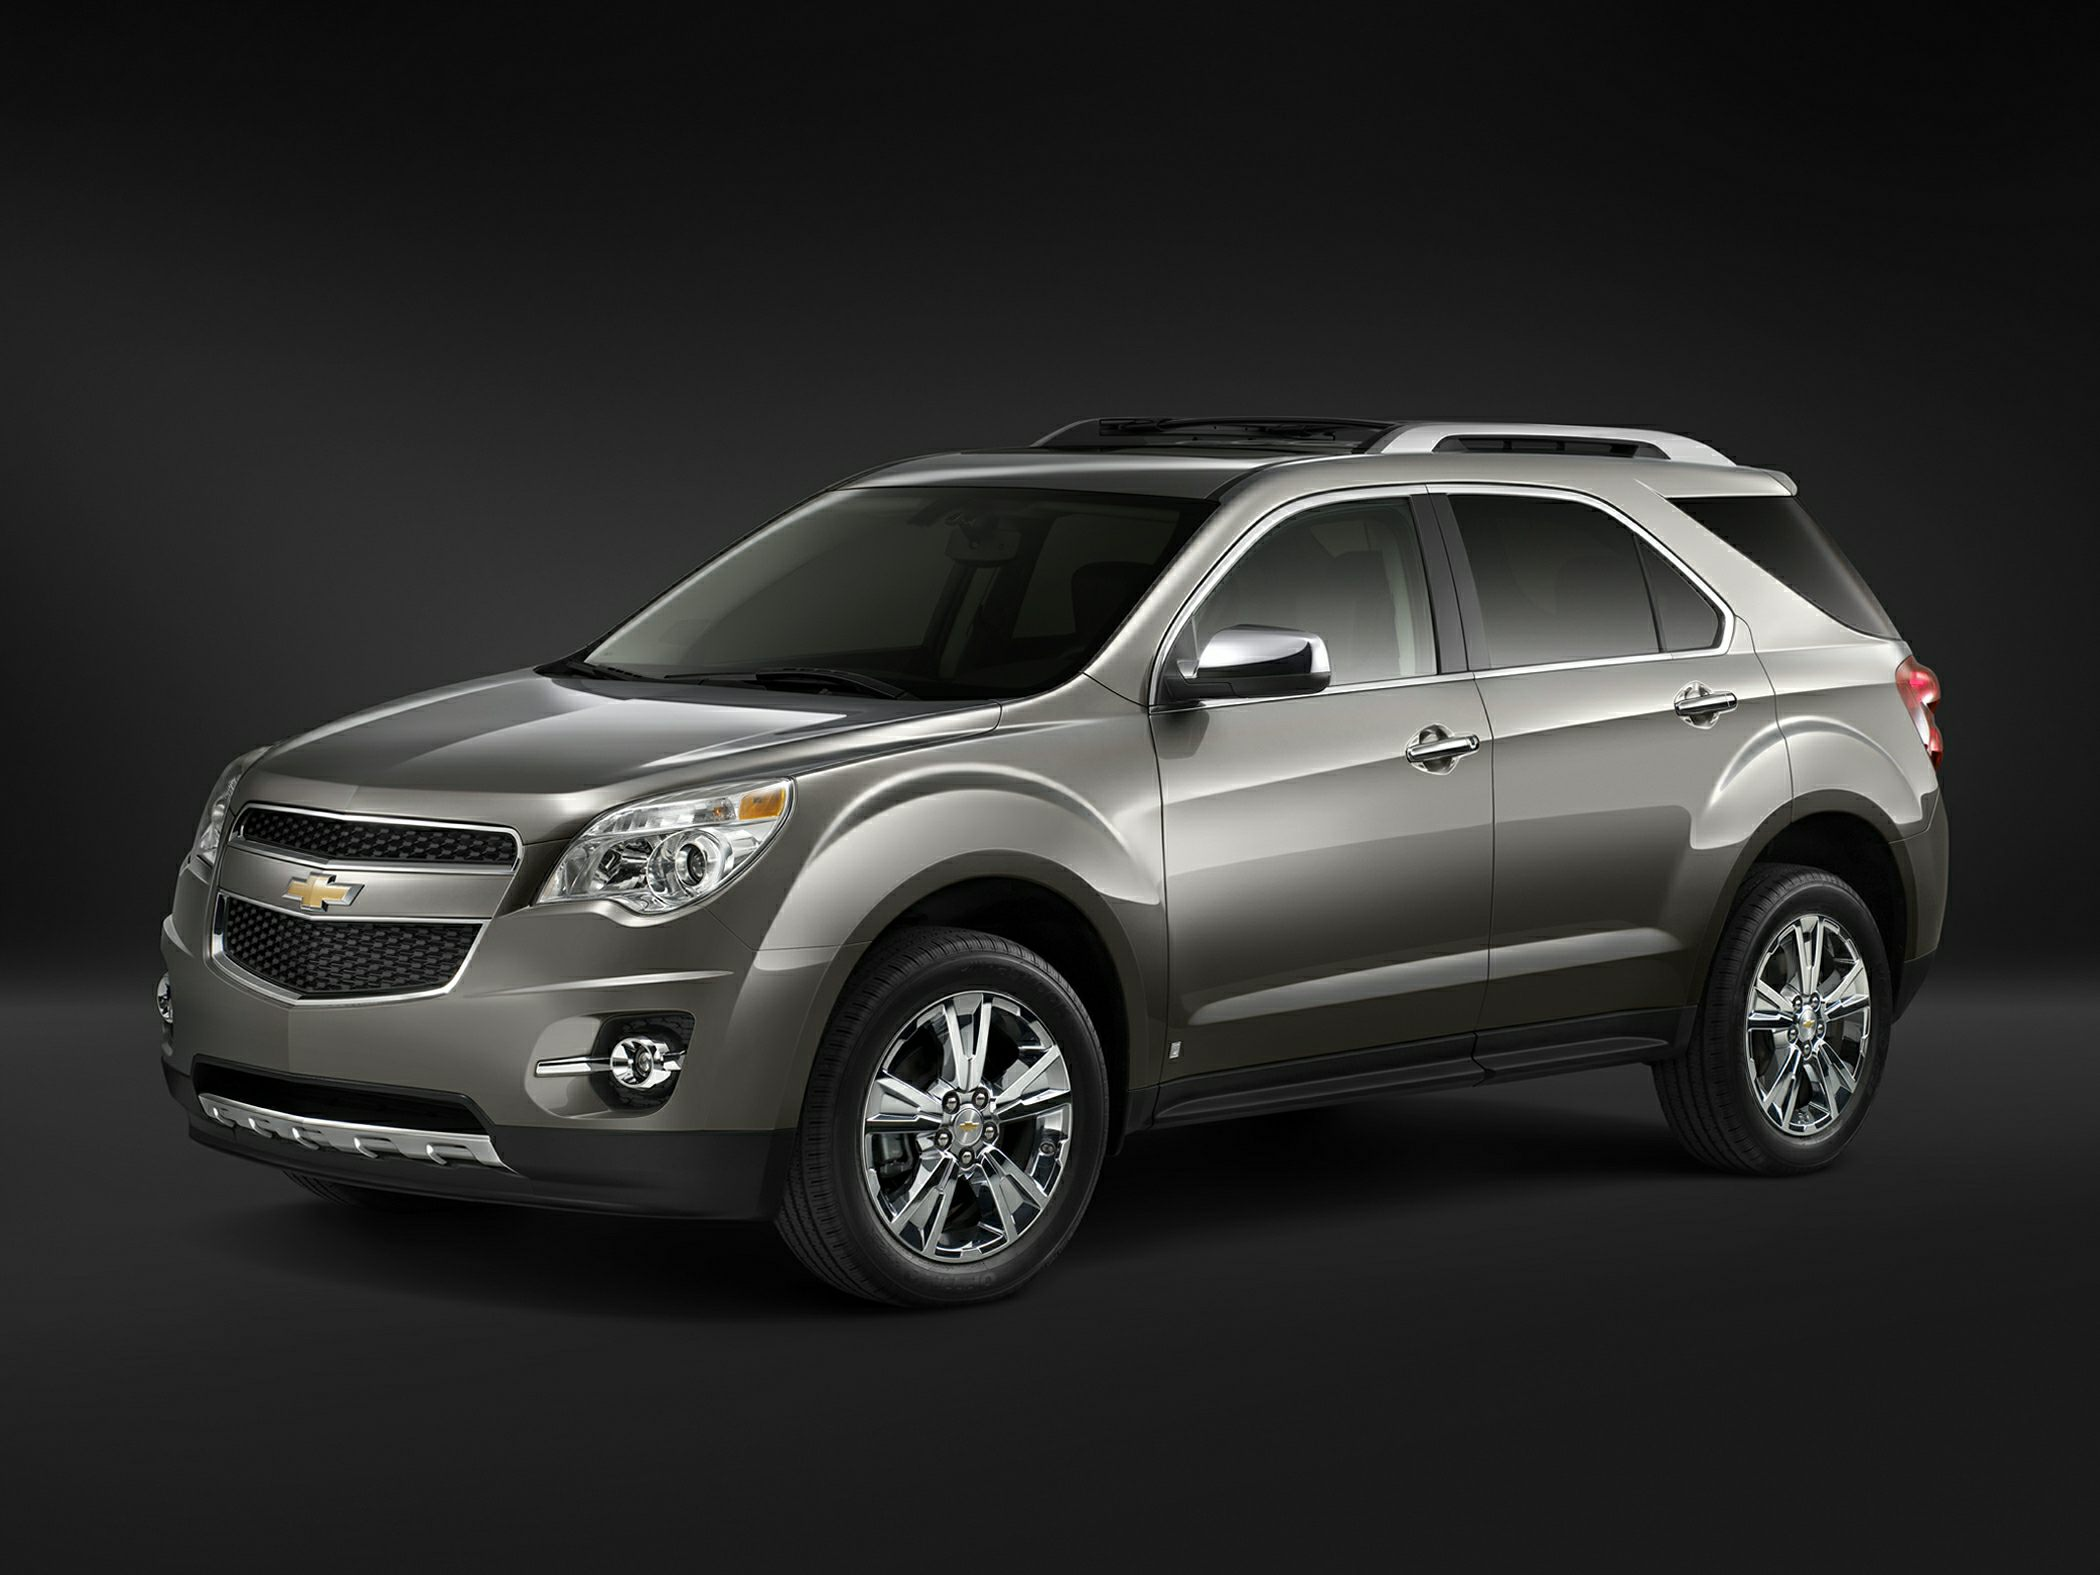 2012 Chevrolet Equinox LTZ Gold Equinox LTZ GM Certified and AWD Only one owner SUV buying mad